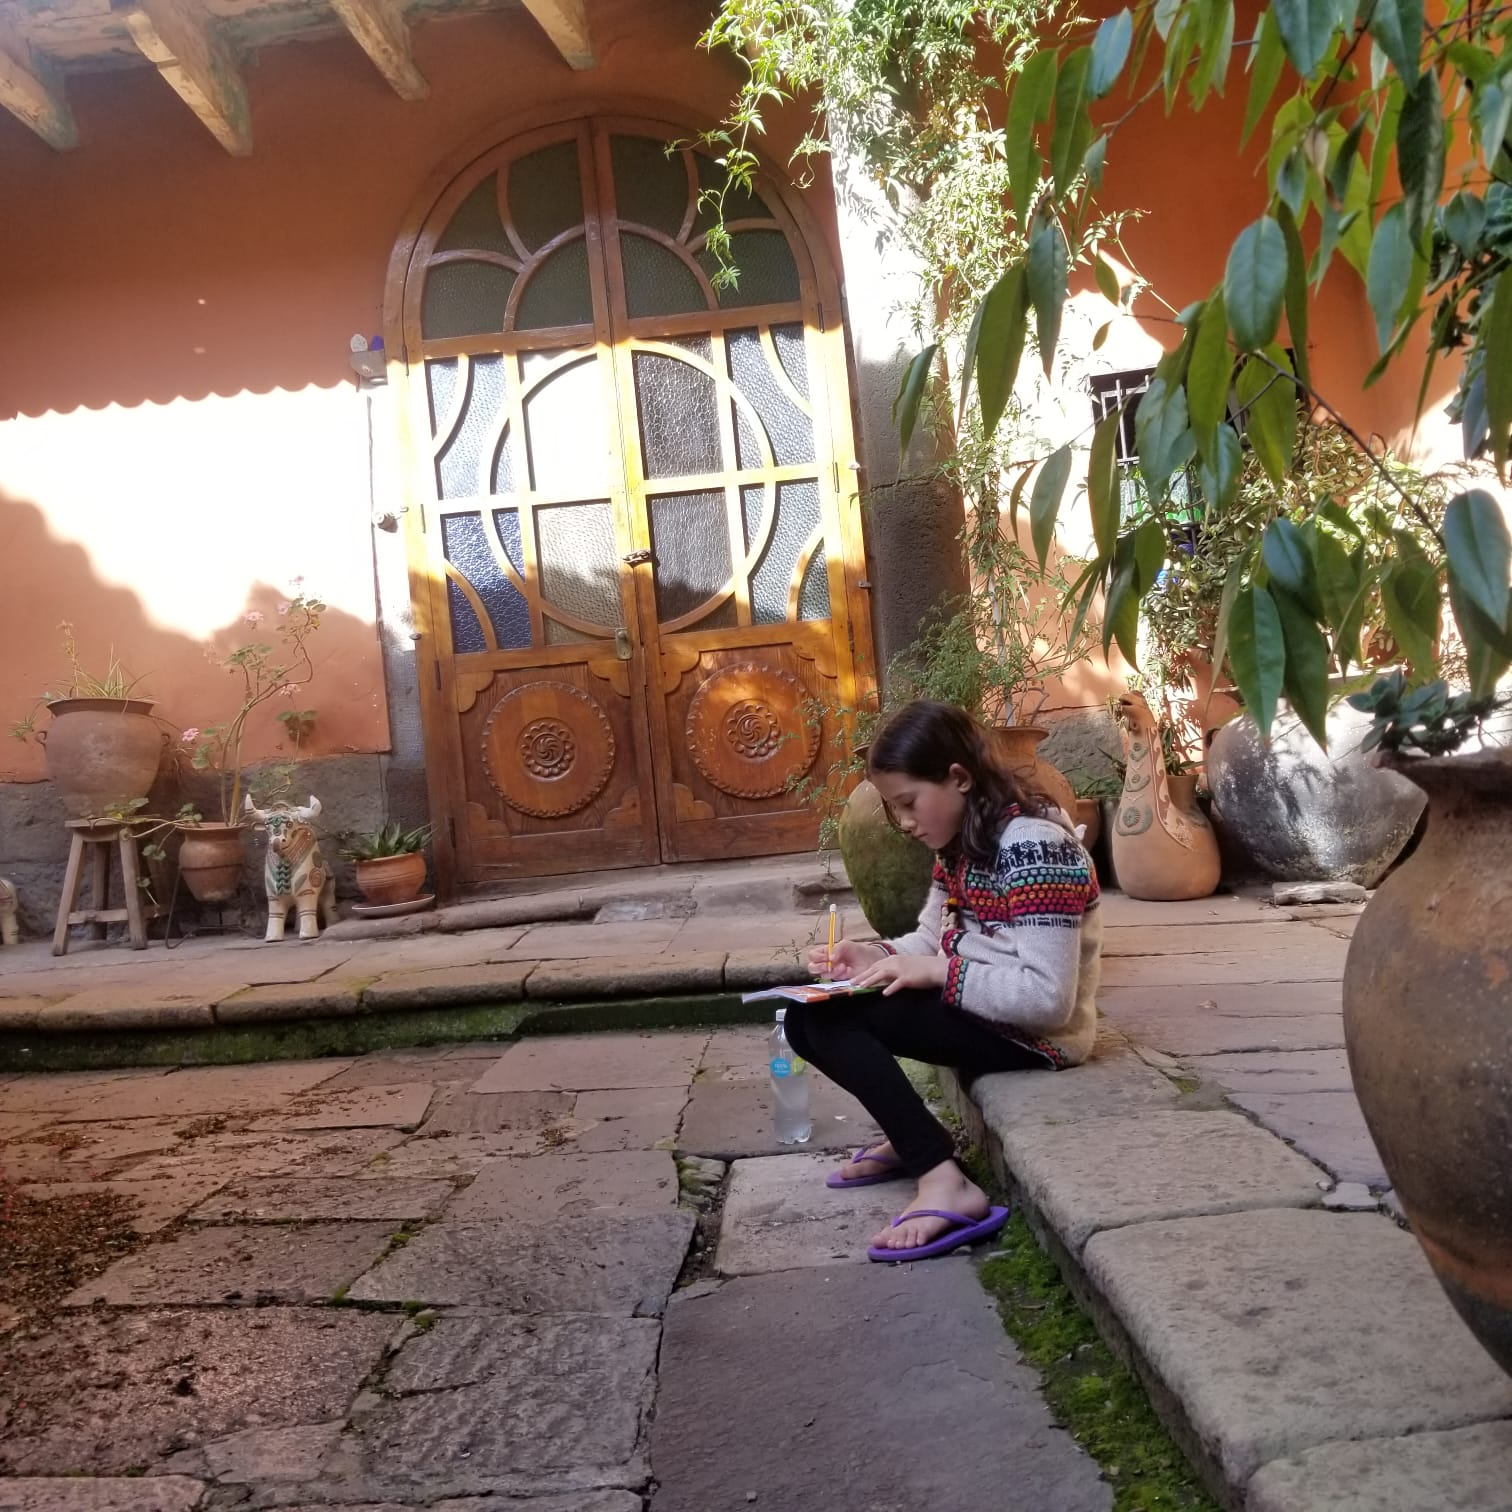 Anya Bailey, 8, has started journaling her experience during the lockdown in Peru, mom Stephanie said. She is pictured in the courtyard of the Airbnb where the family is staying.